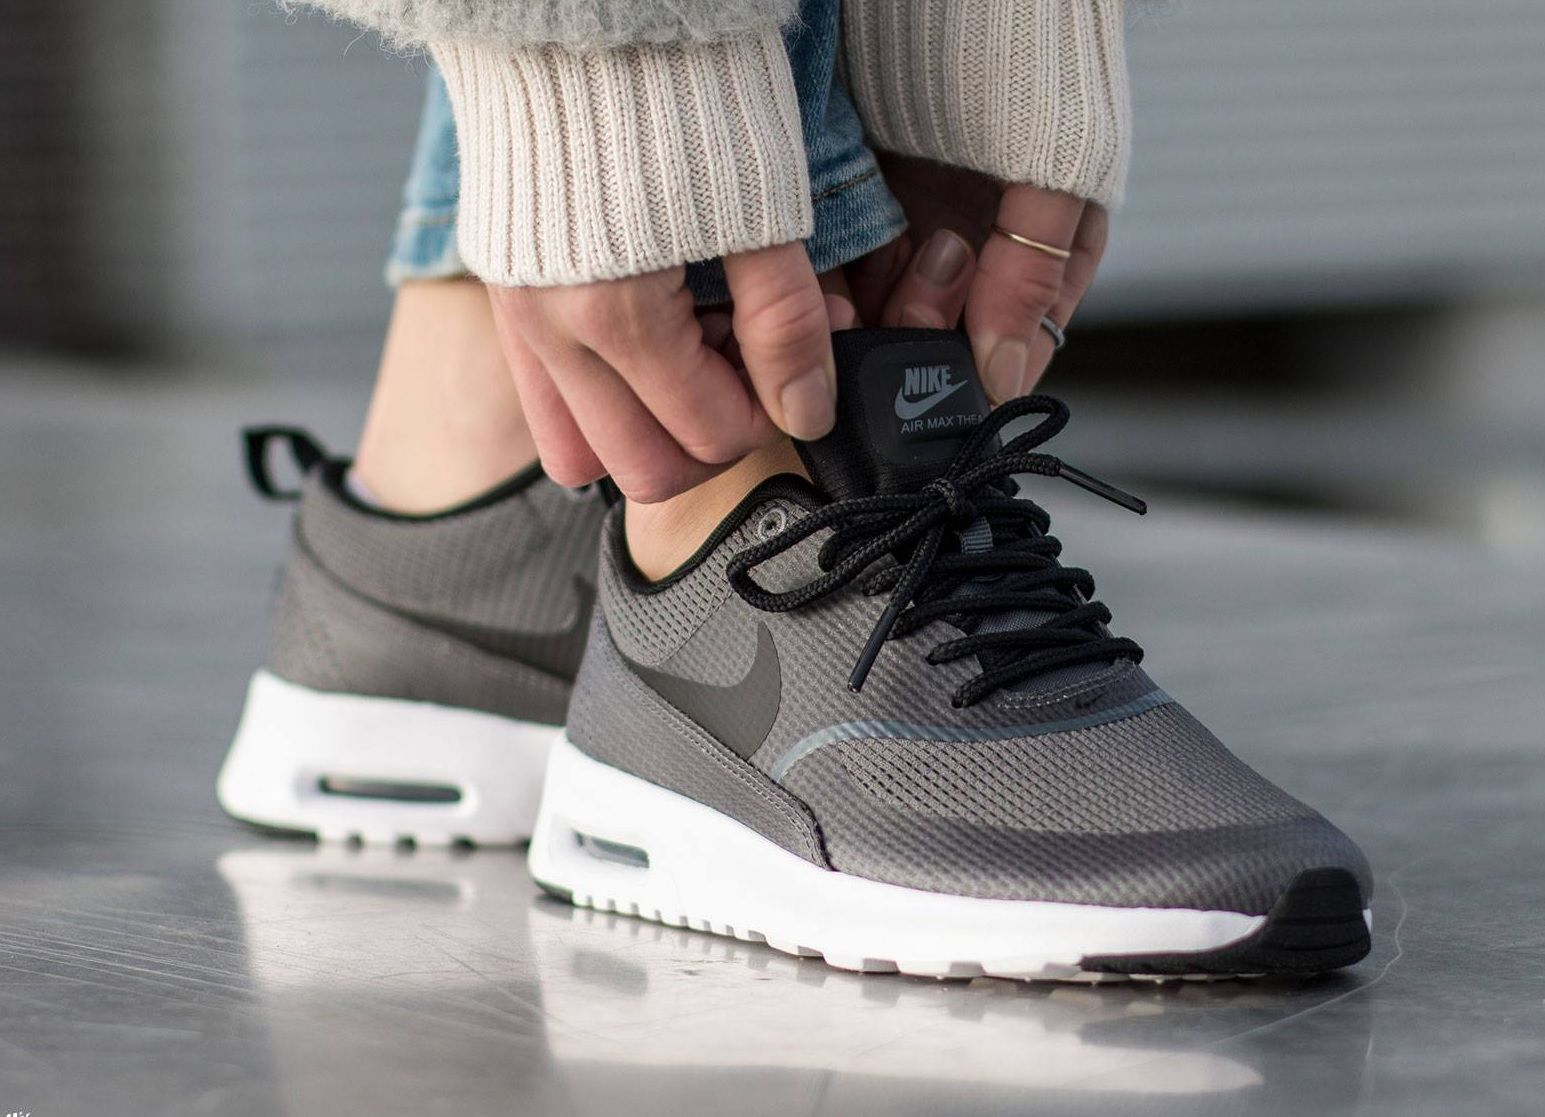 Nike Air Max Thea TXT: Dark Grey | süße Outfits | Nike